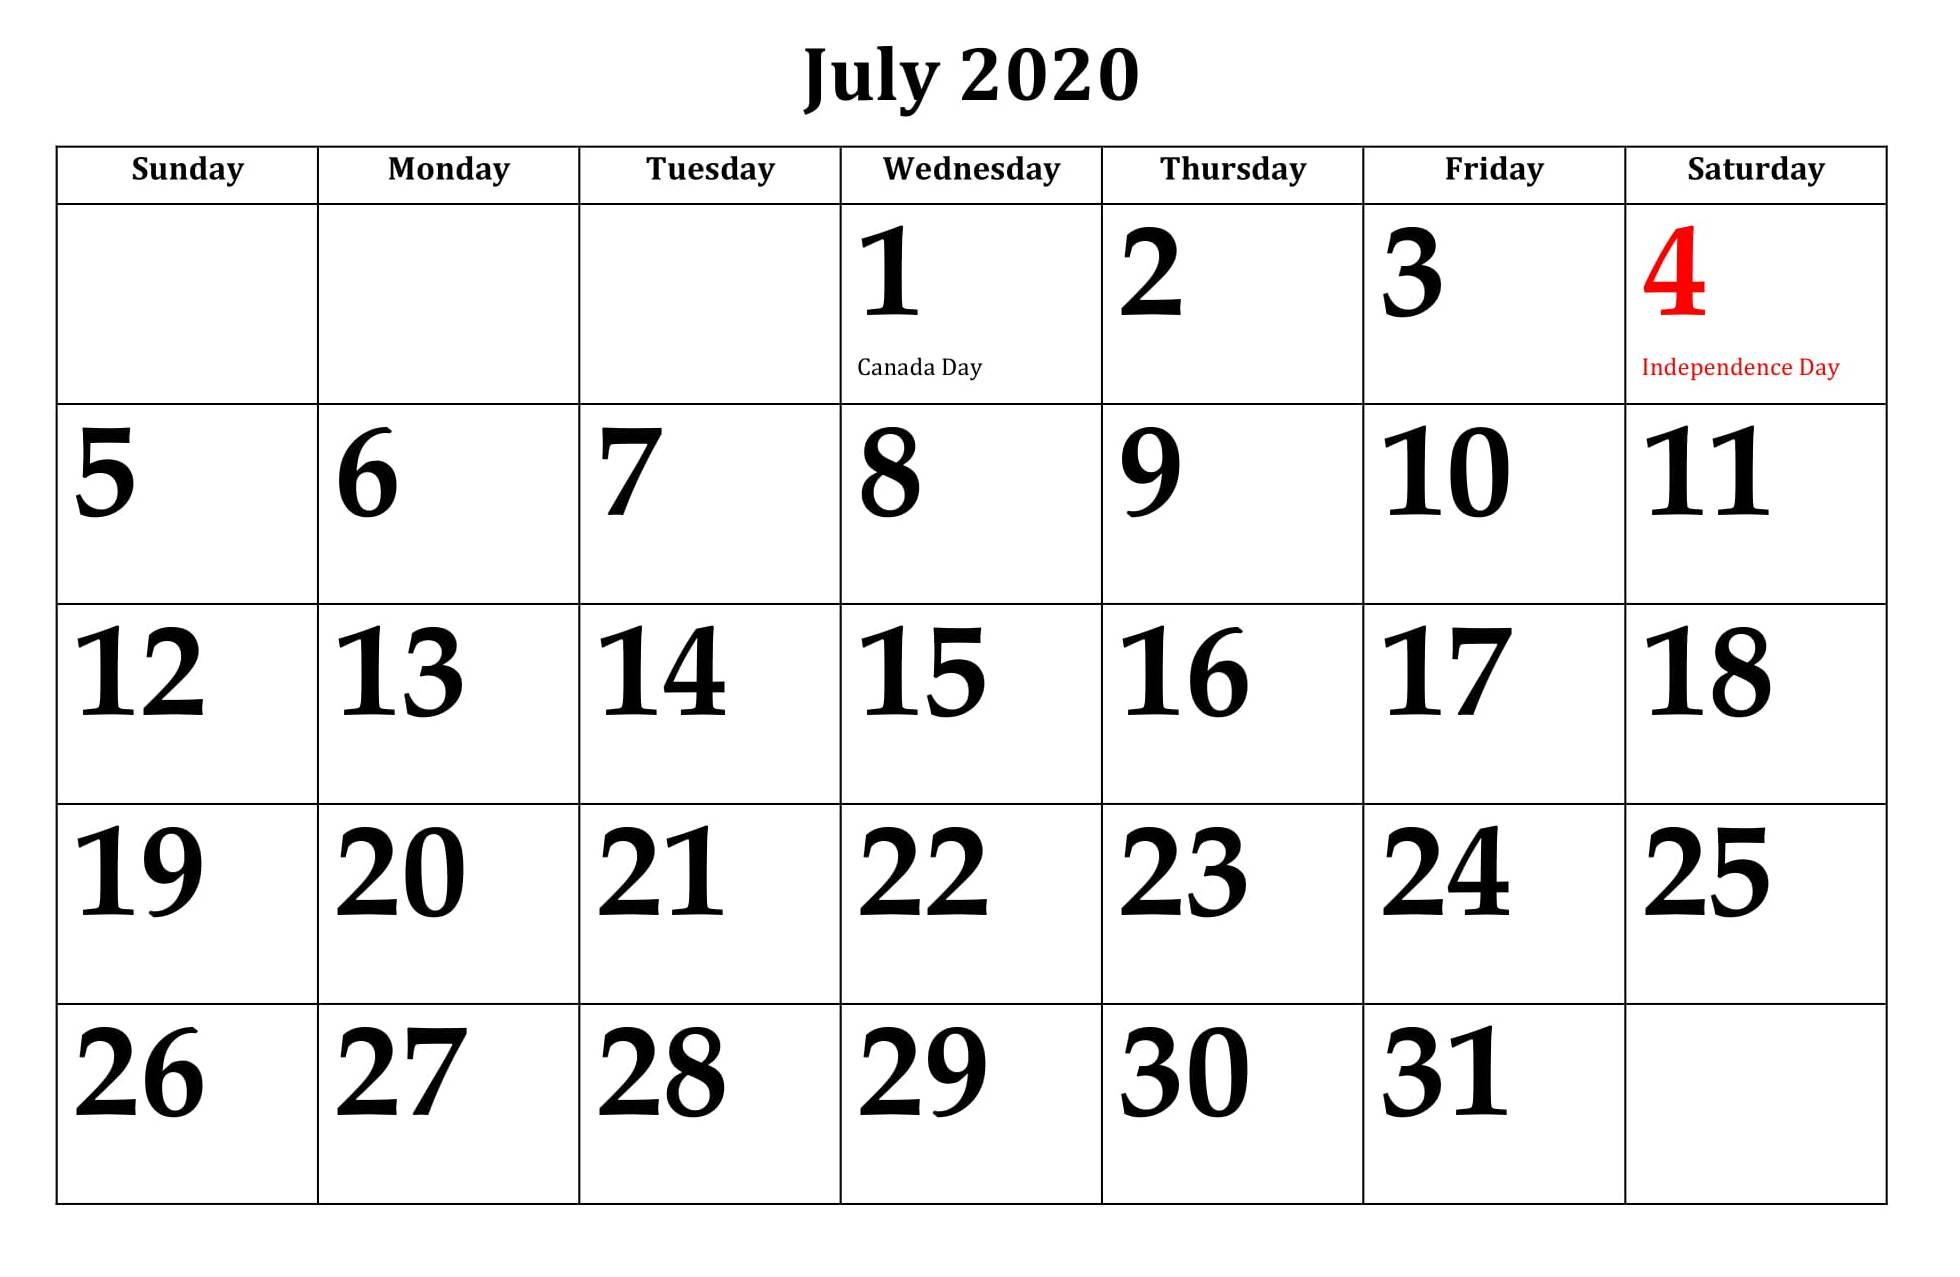 July 2020 Holidays Calendar Template